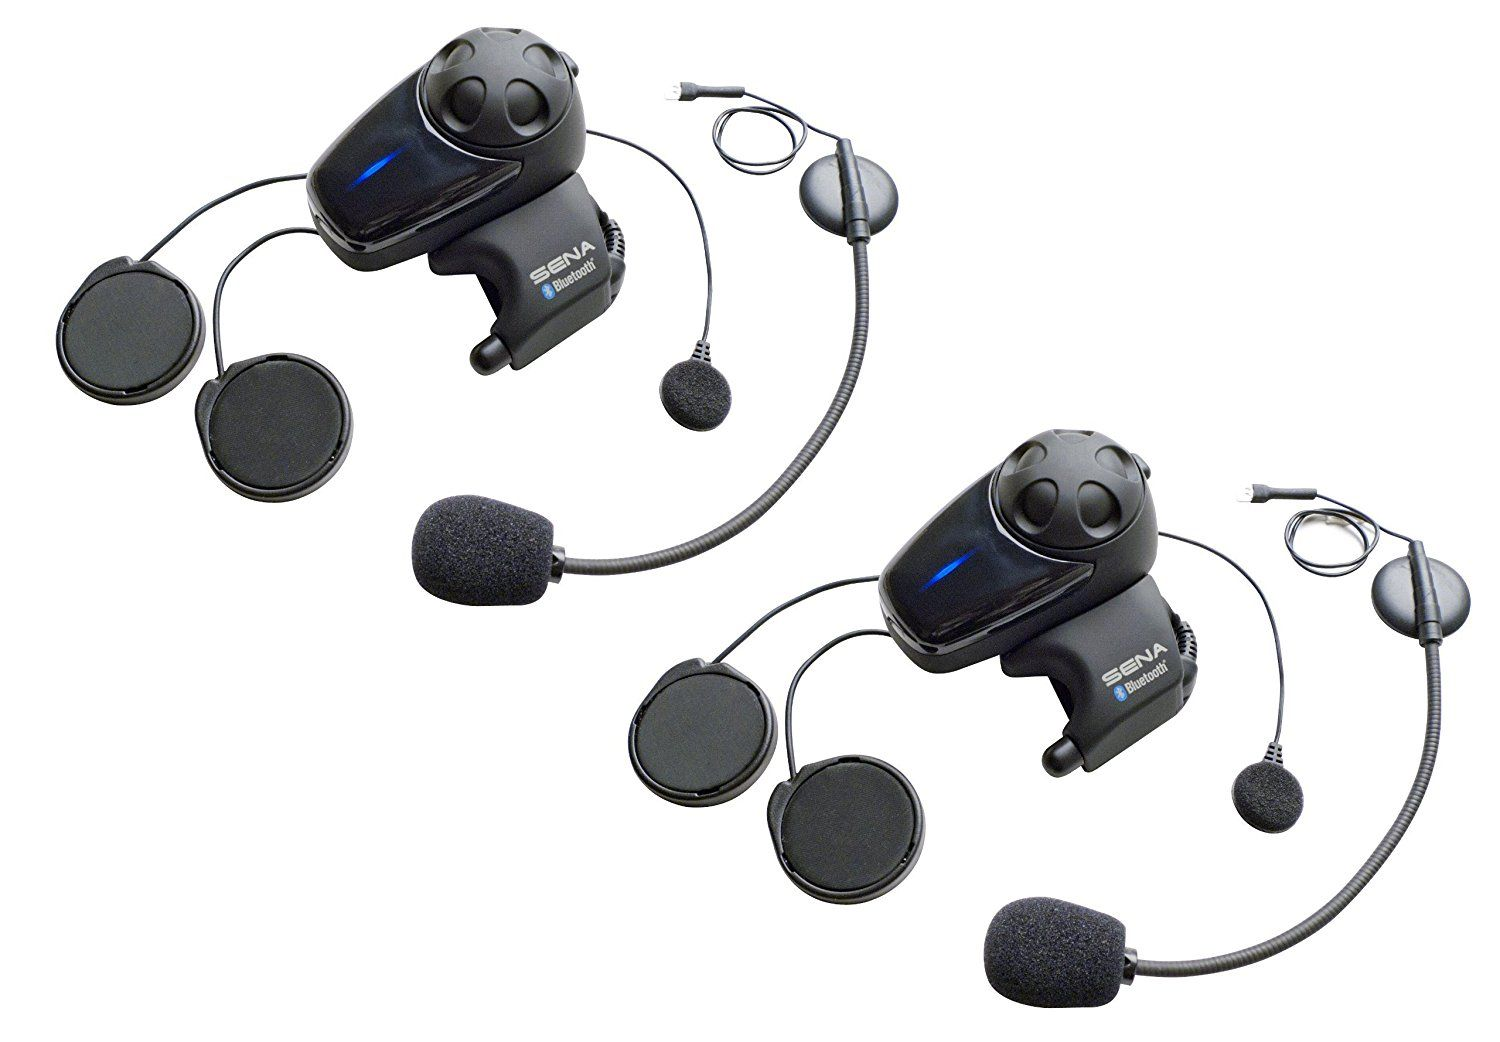 4affe1822b1 Sena SMH10D-11 Motorcycle Bluetooth Headset / Intercom with Universal  Microphone Kit (Dual) Price 149,5